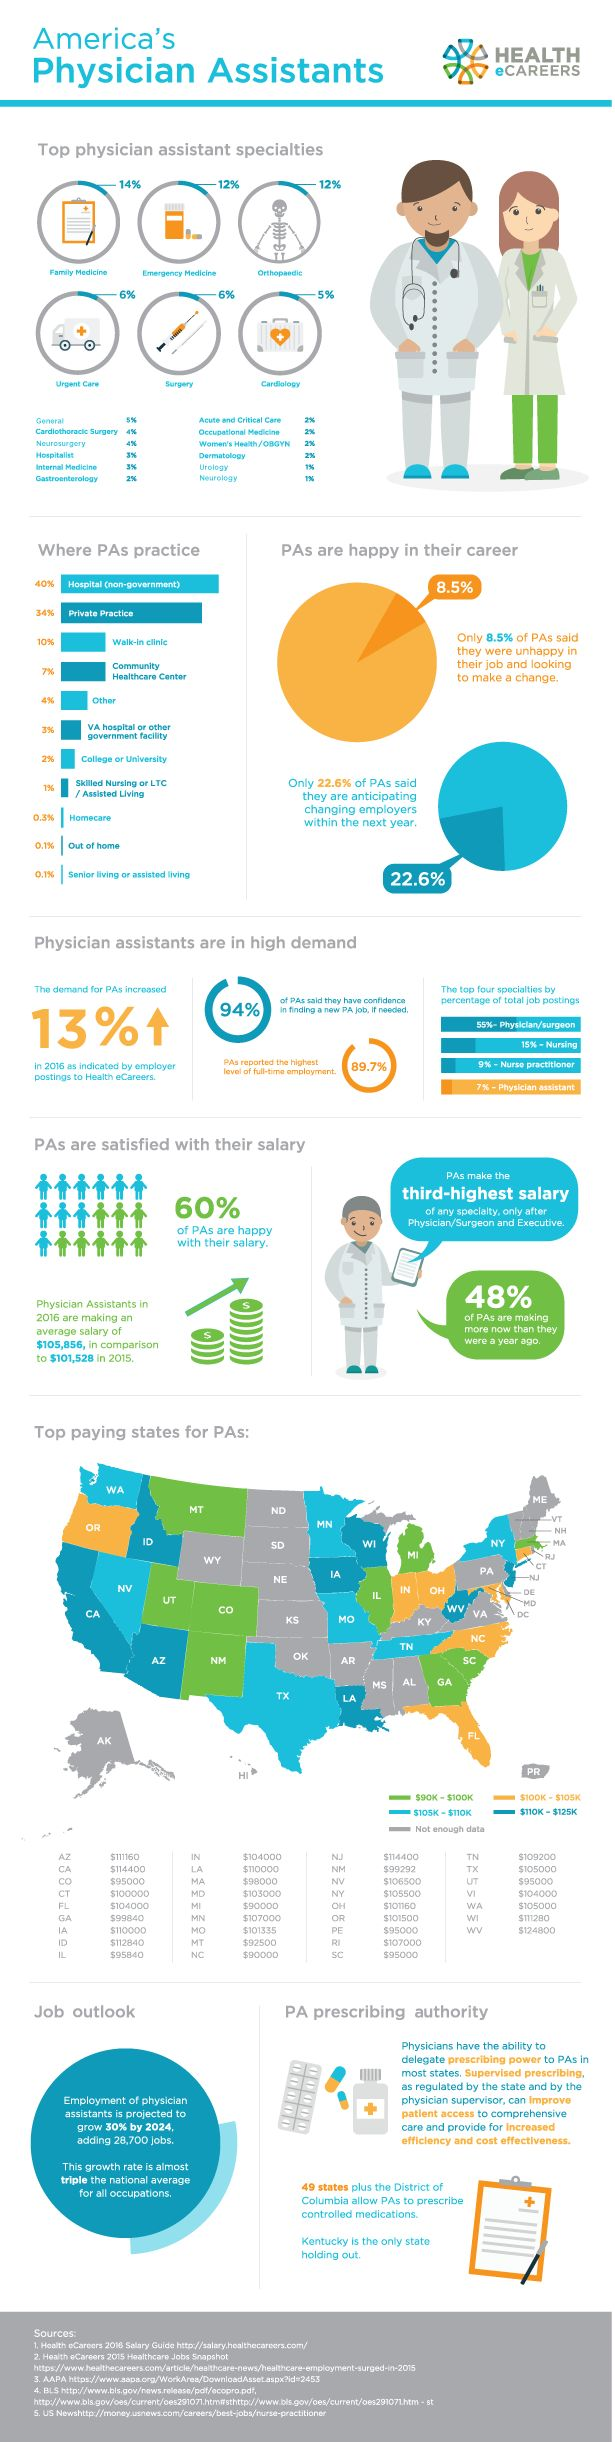 America's Physician Assistants | Health eCareers